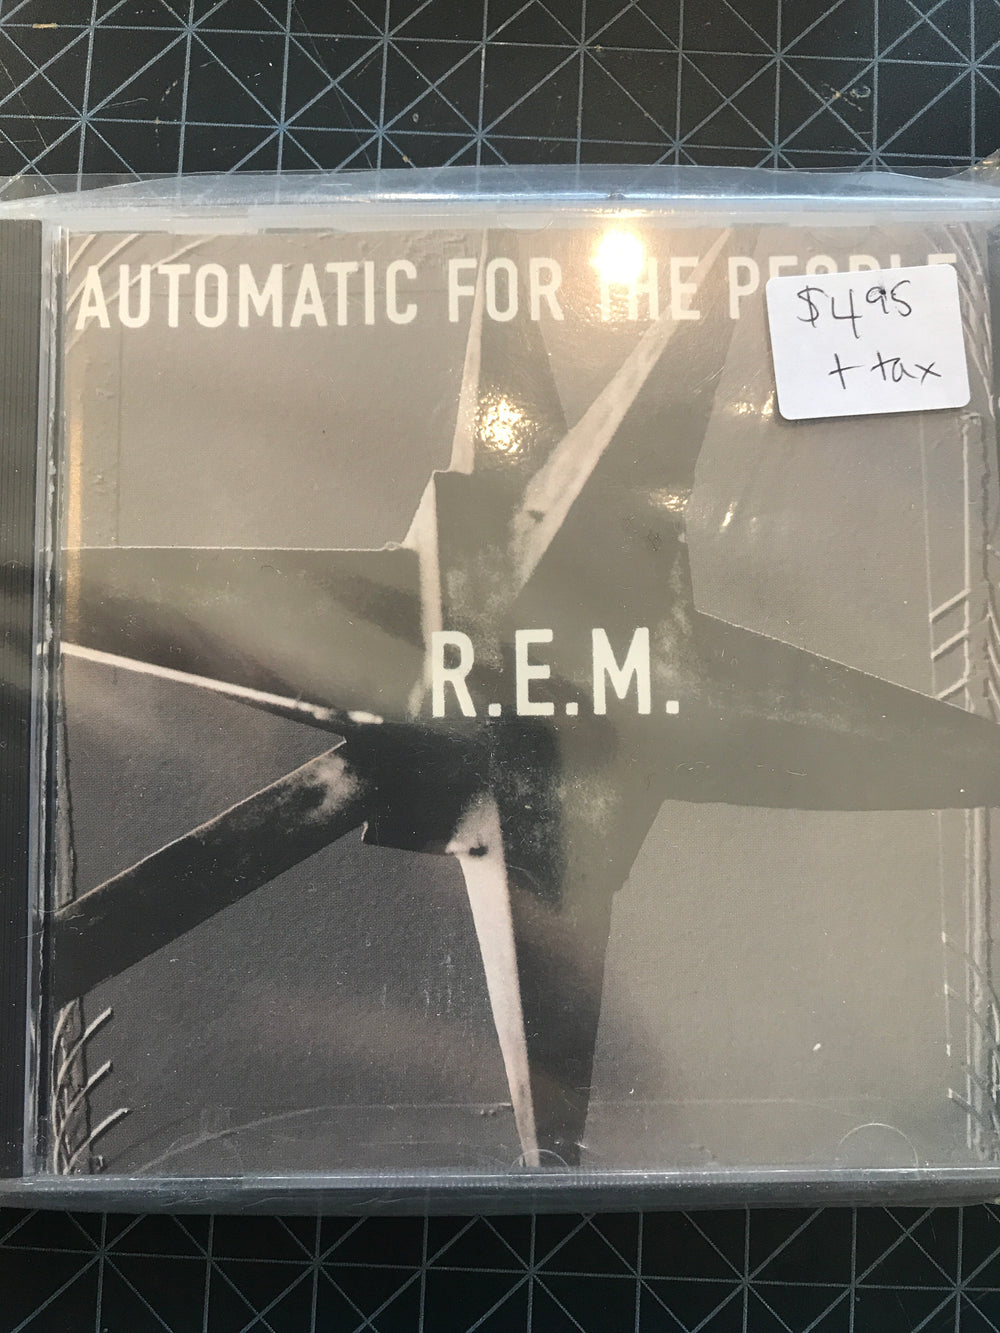 R.E.M. - Automatic For The People - Used CD